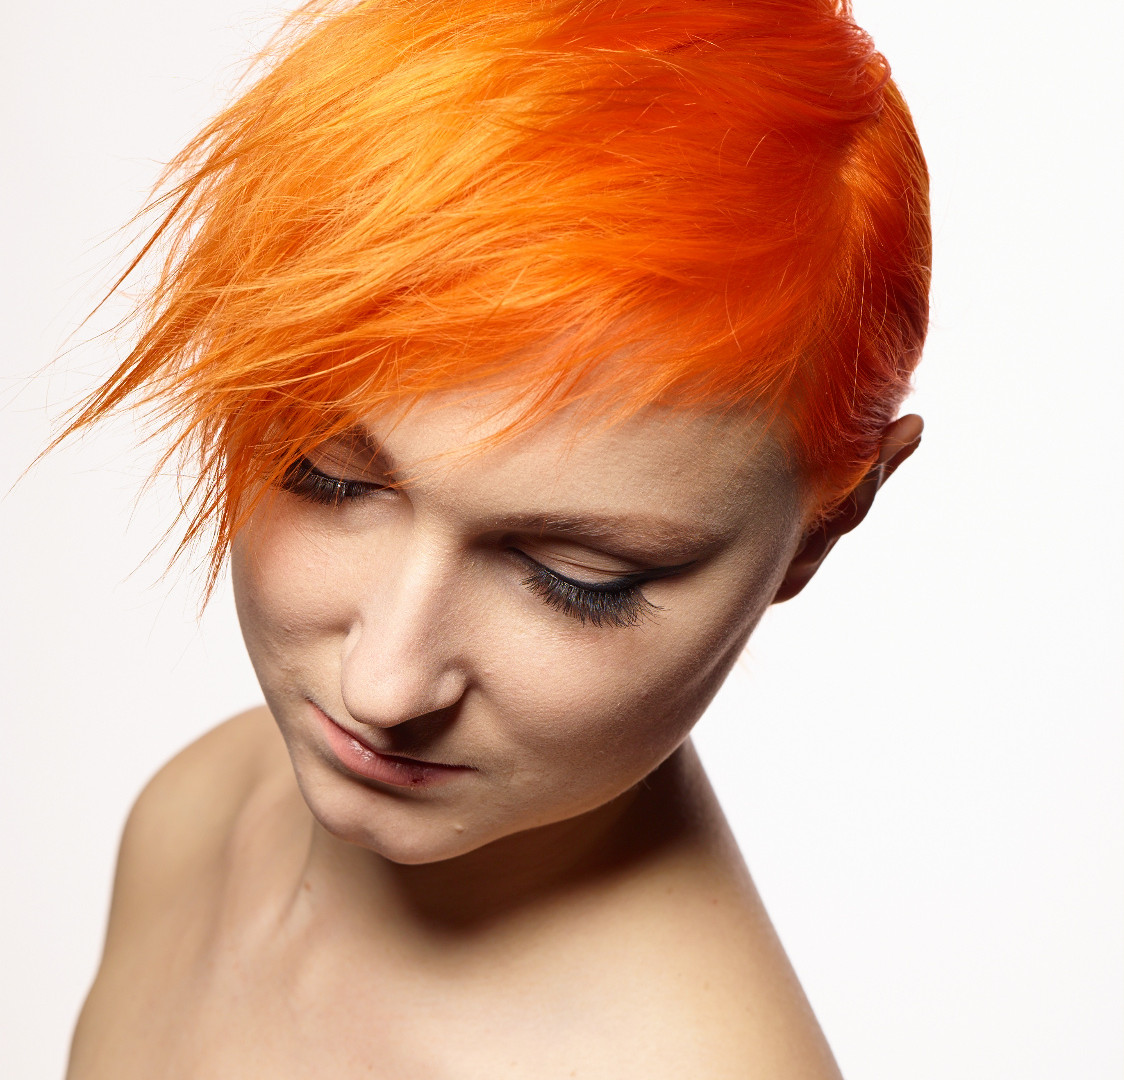 Toni-Guy-Hairdressing-Anna-Orange-41034.